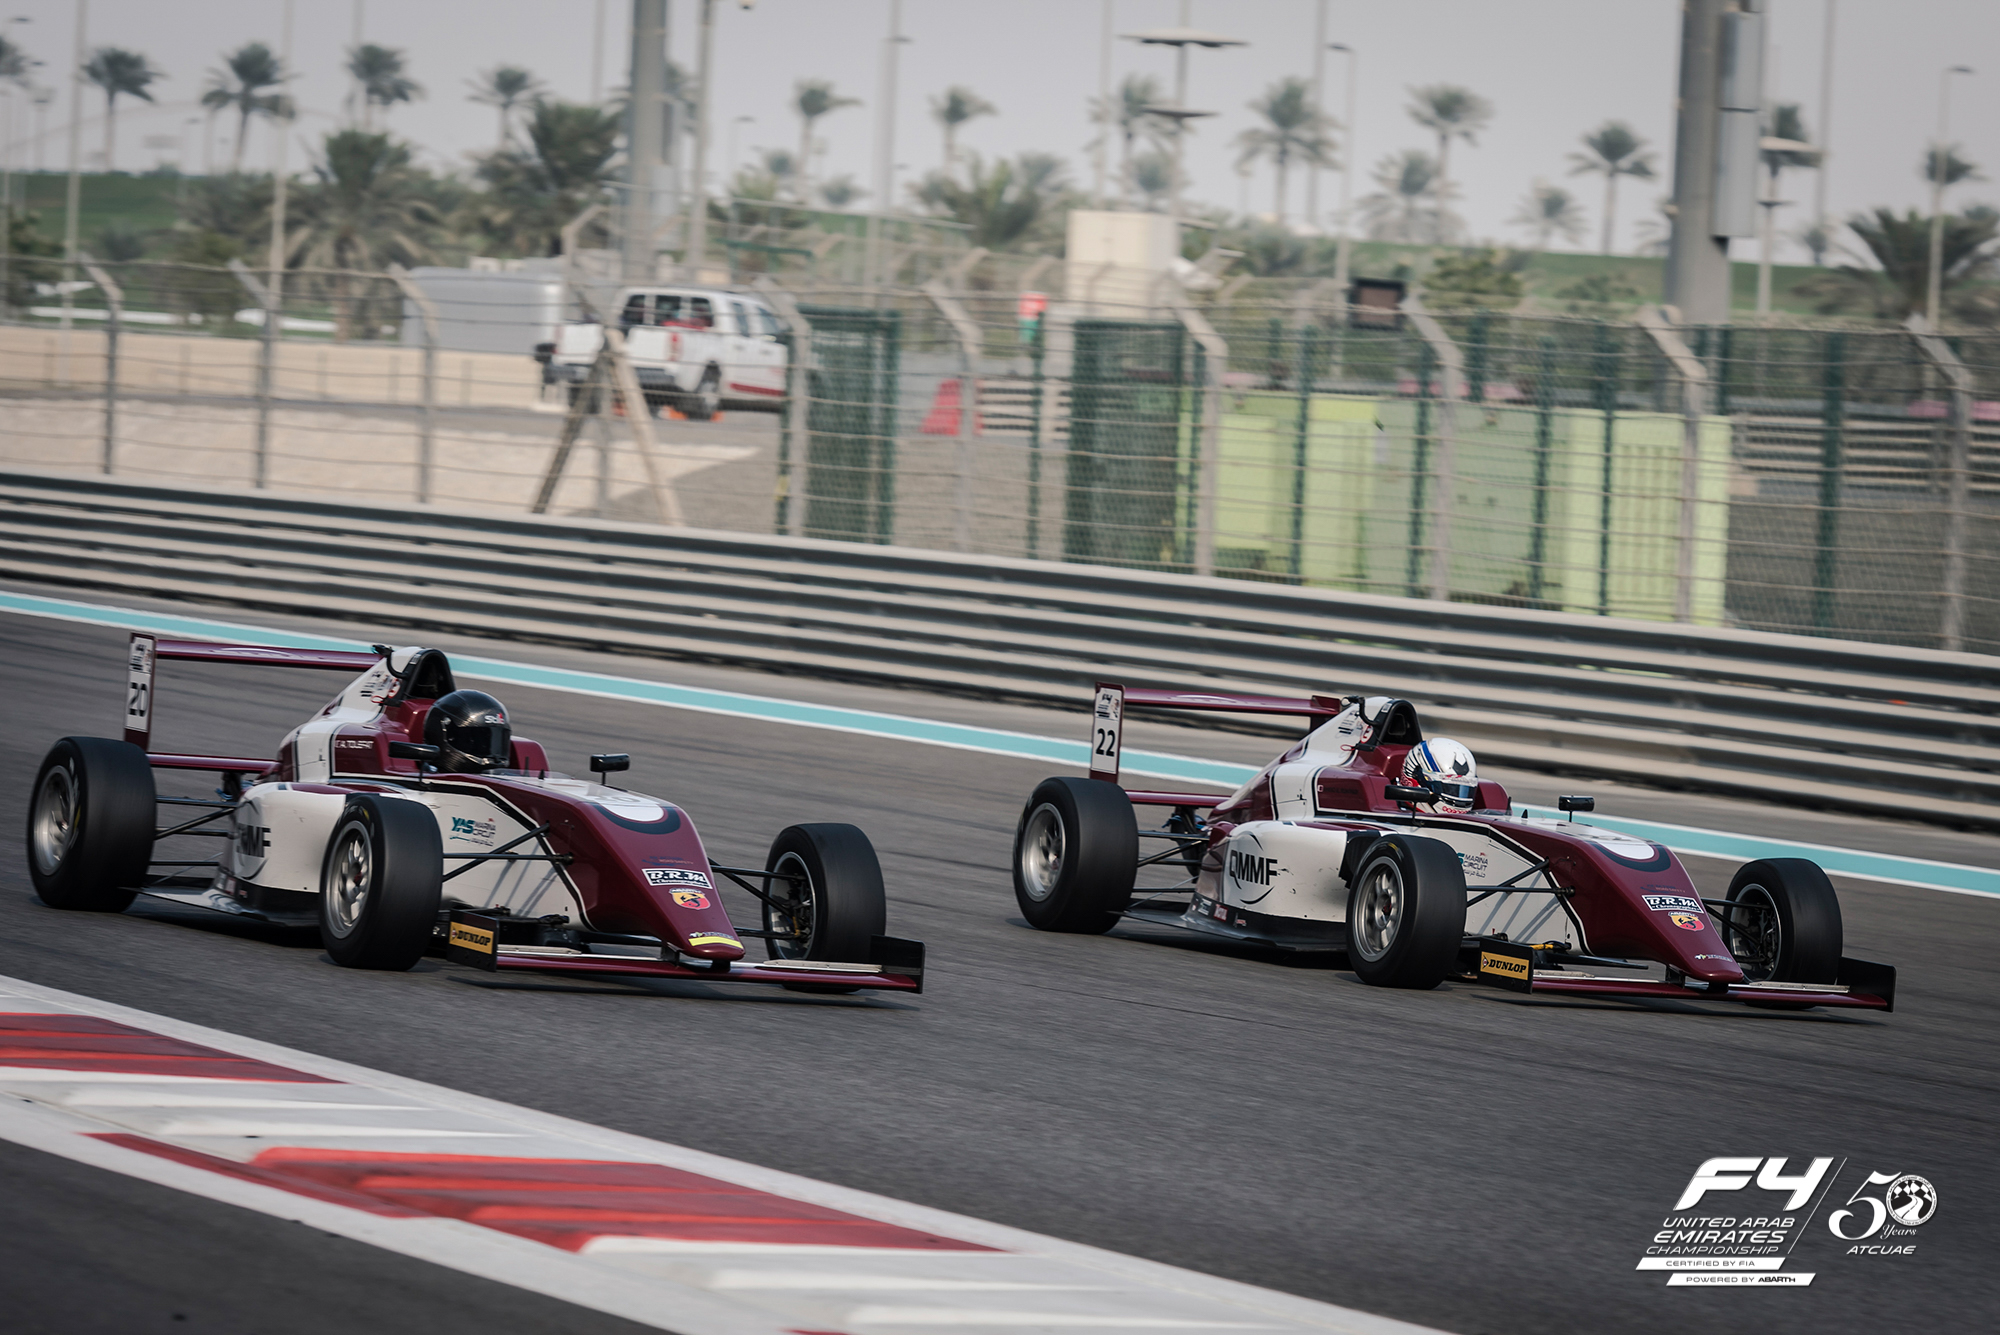 2016 16 12   F4 Second Round   Abu Dhabi 9 1